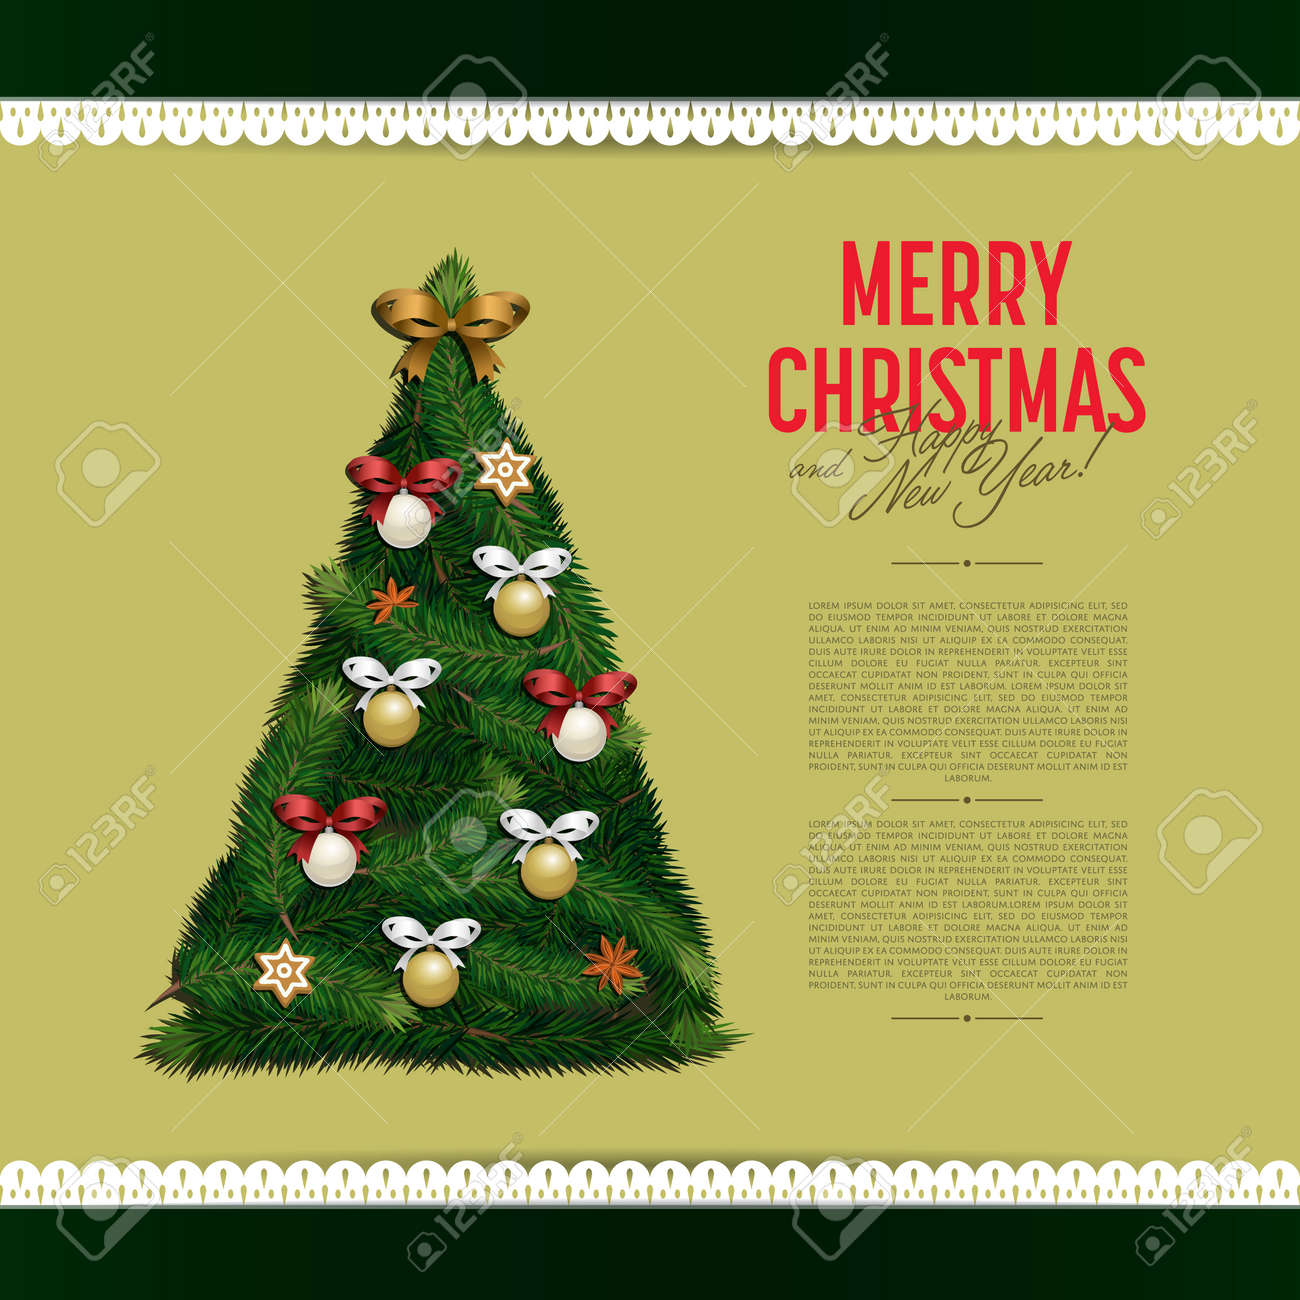 Merry Christmas And Happy New Year Greeting Card Vector Illustration